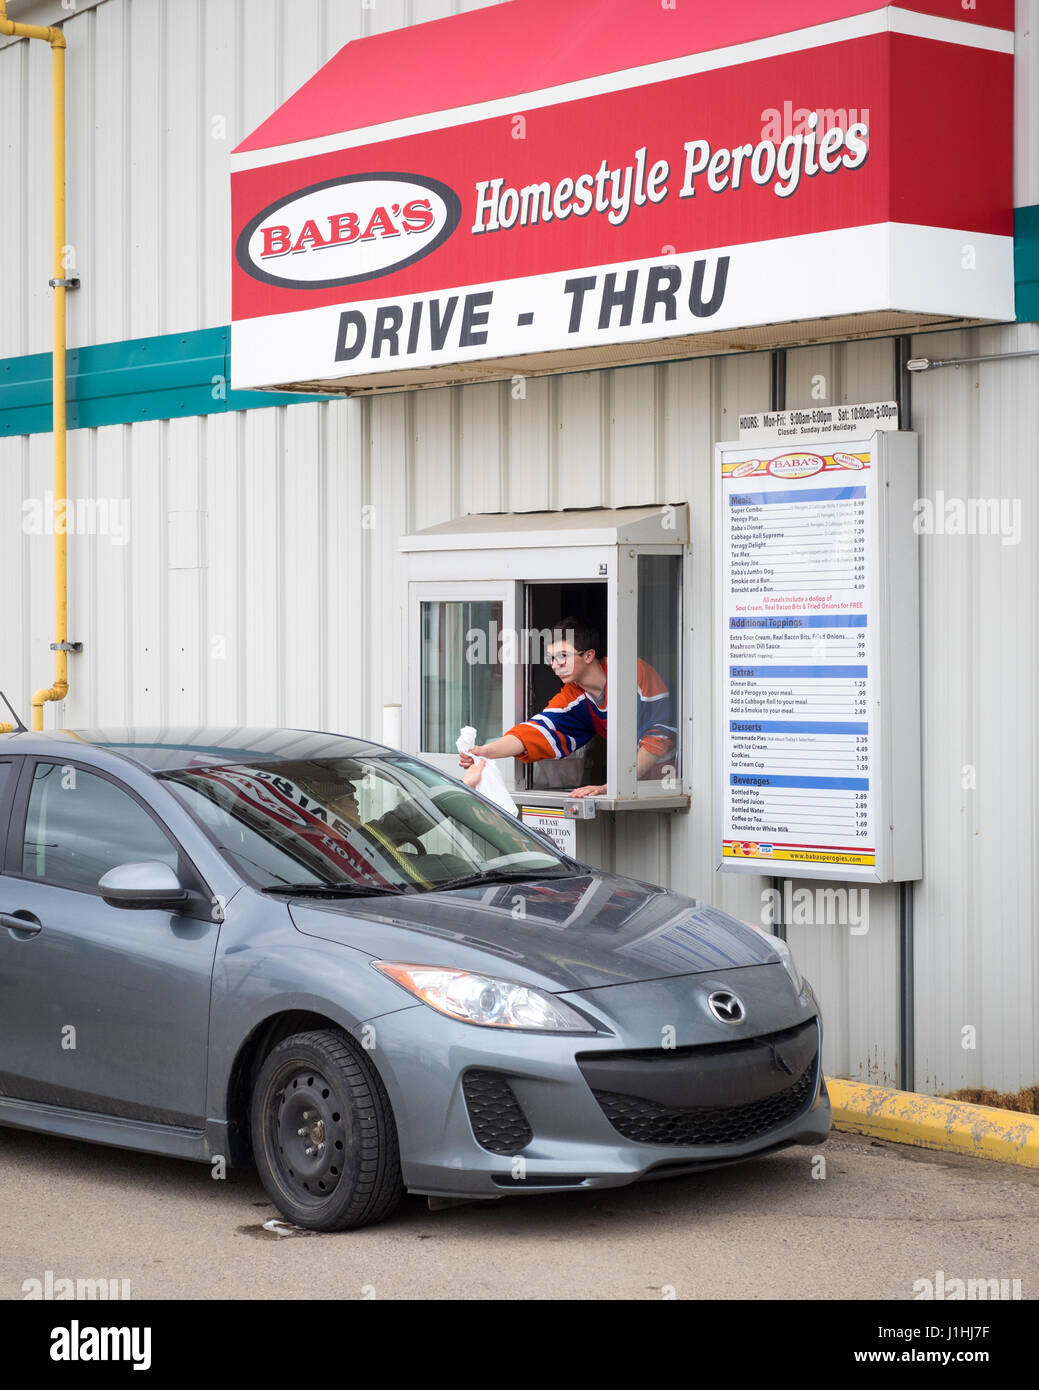 A drive-thru customer at the drive-thru window at Baba's Homestyle Perogies in Saskatoon, Saskatchewan, Canada. - Stock Image